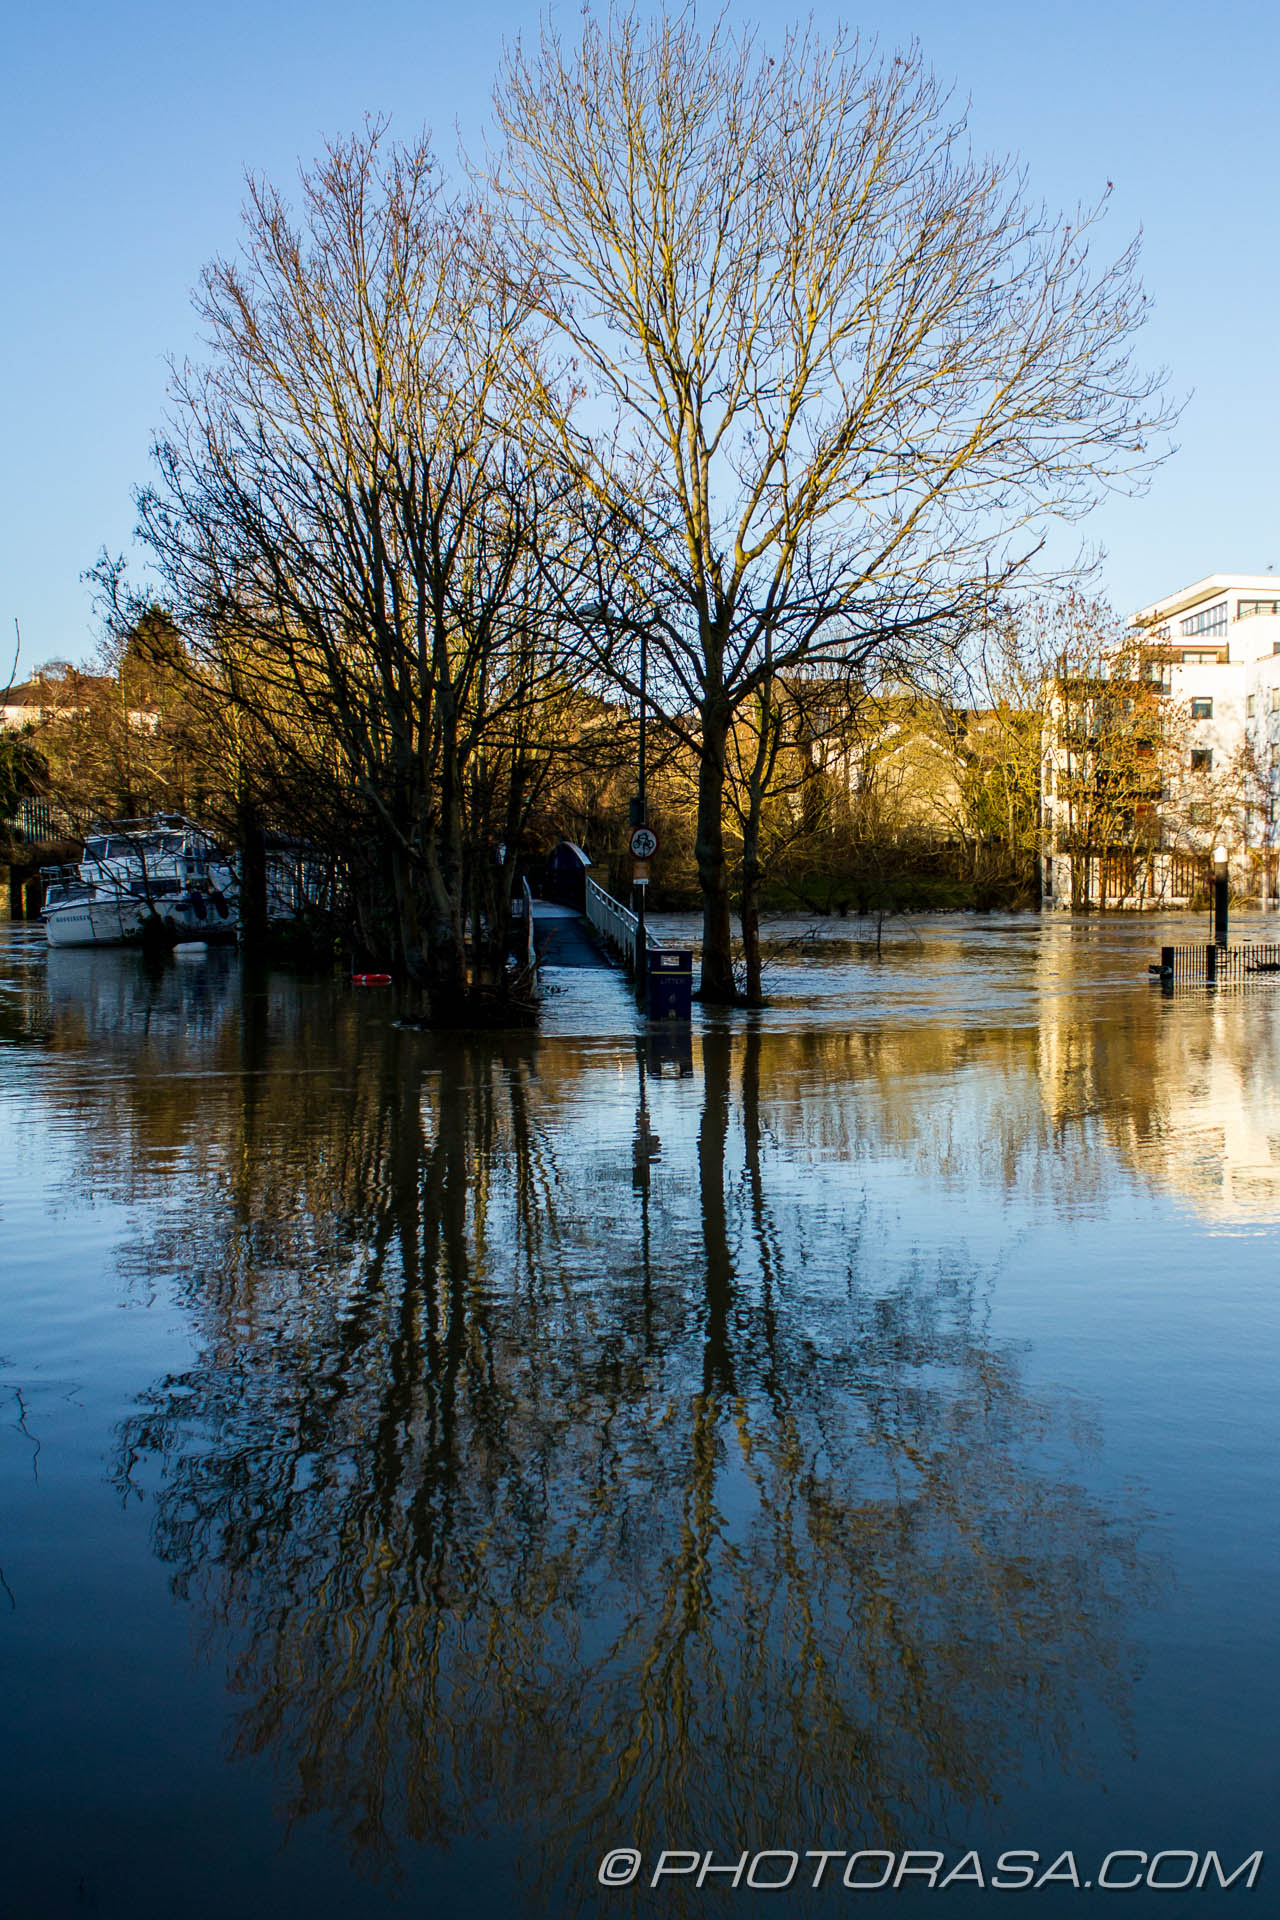 http://photorasa.com/wet-xmas-maidstone-river-medway-floods-town-centre/tree-reflection-at-unmoored-boat-at-tovil-footbridge/